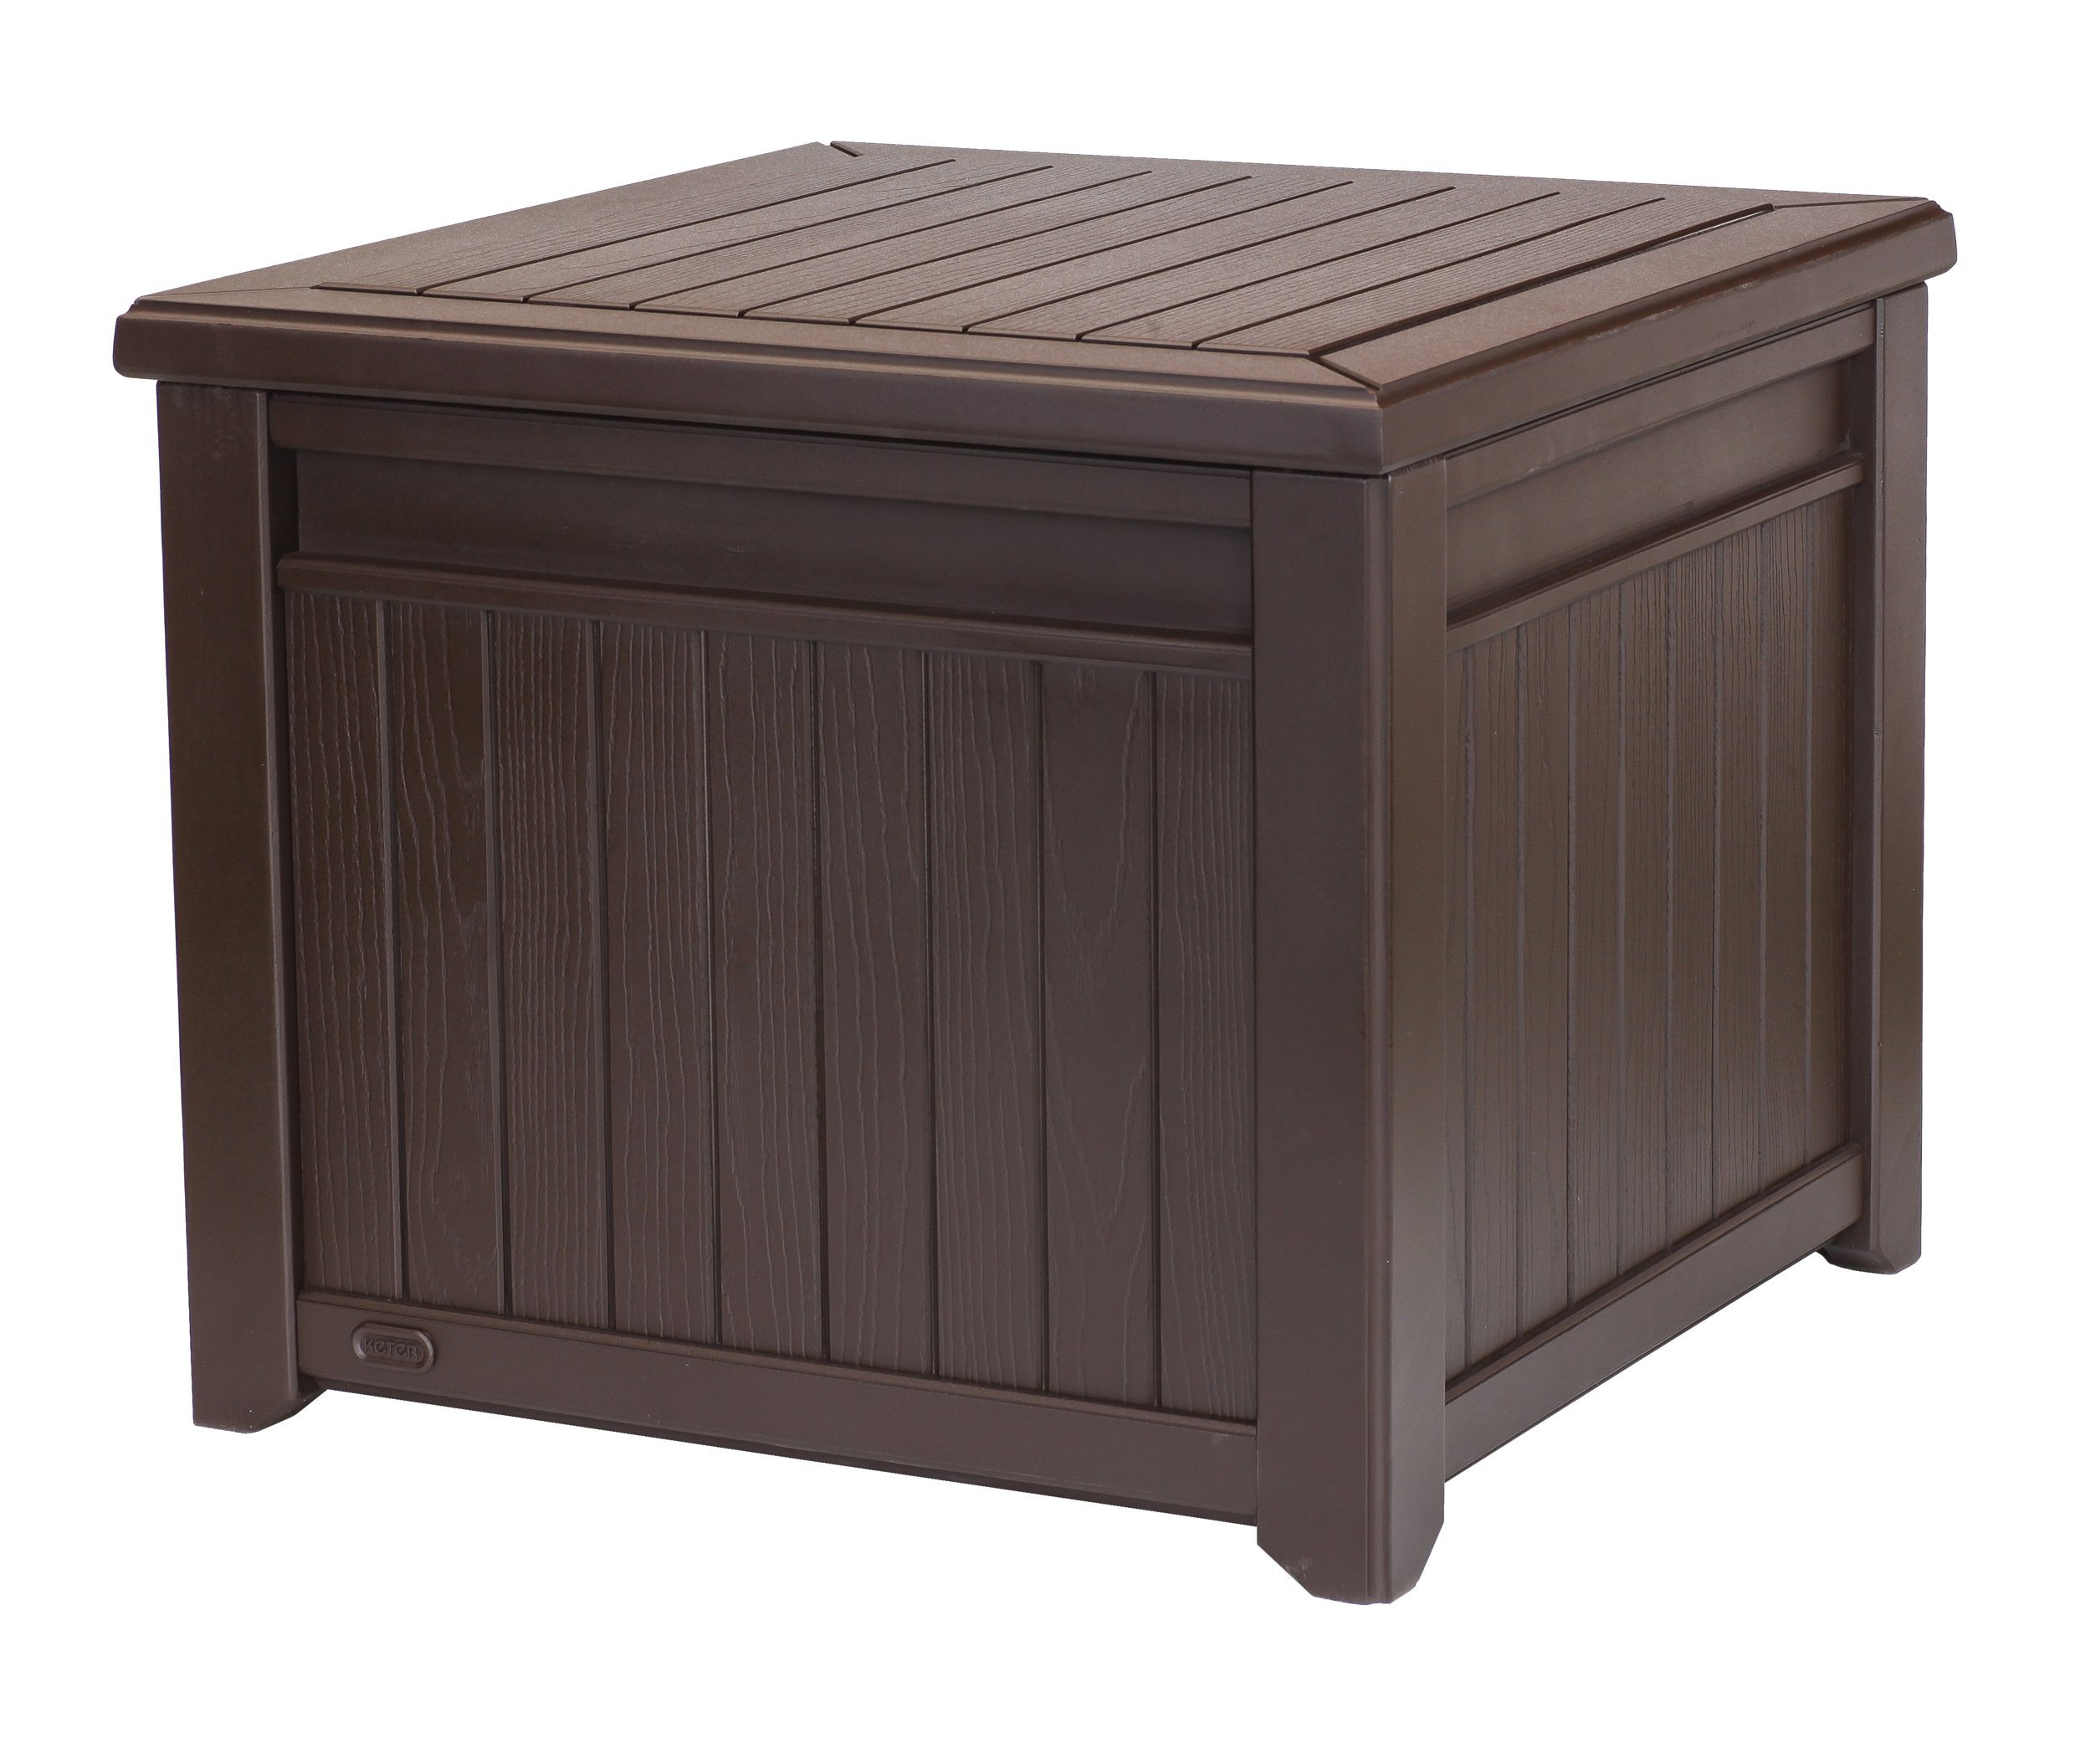 Keter Wood Look Gallon All Weather Storage